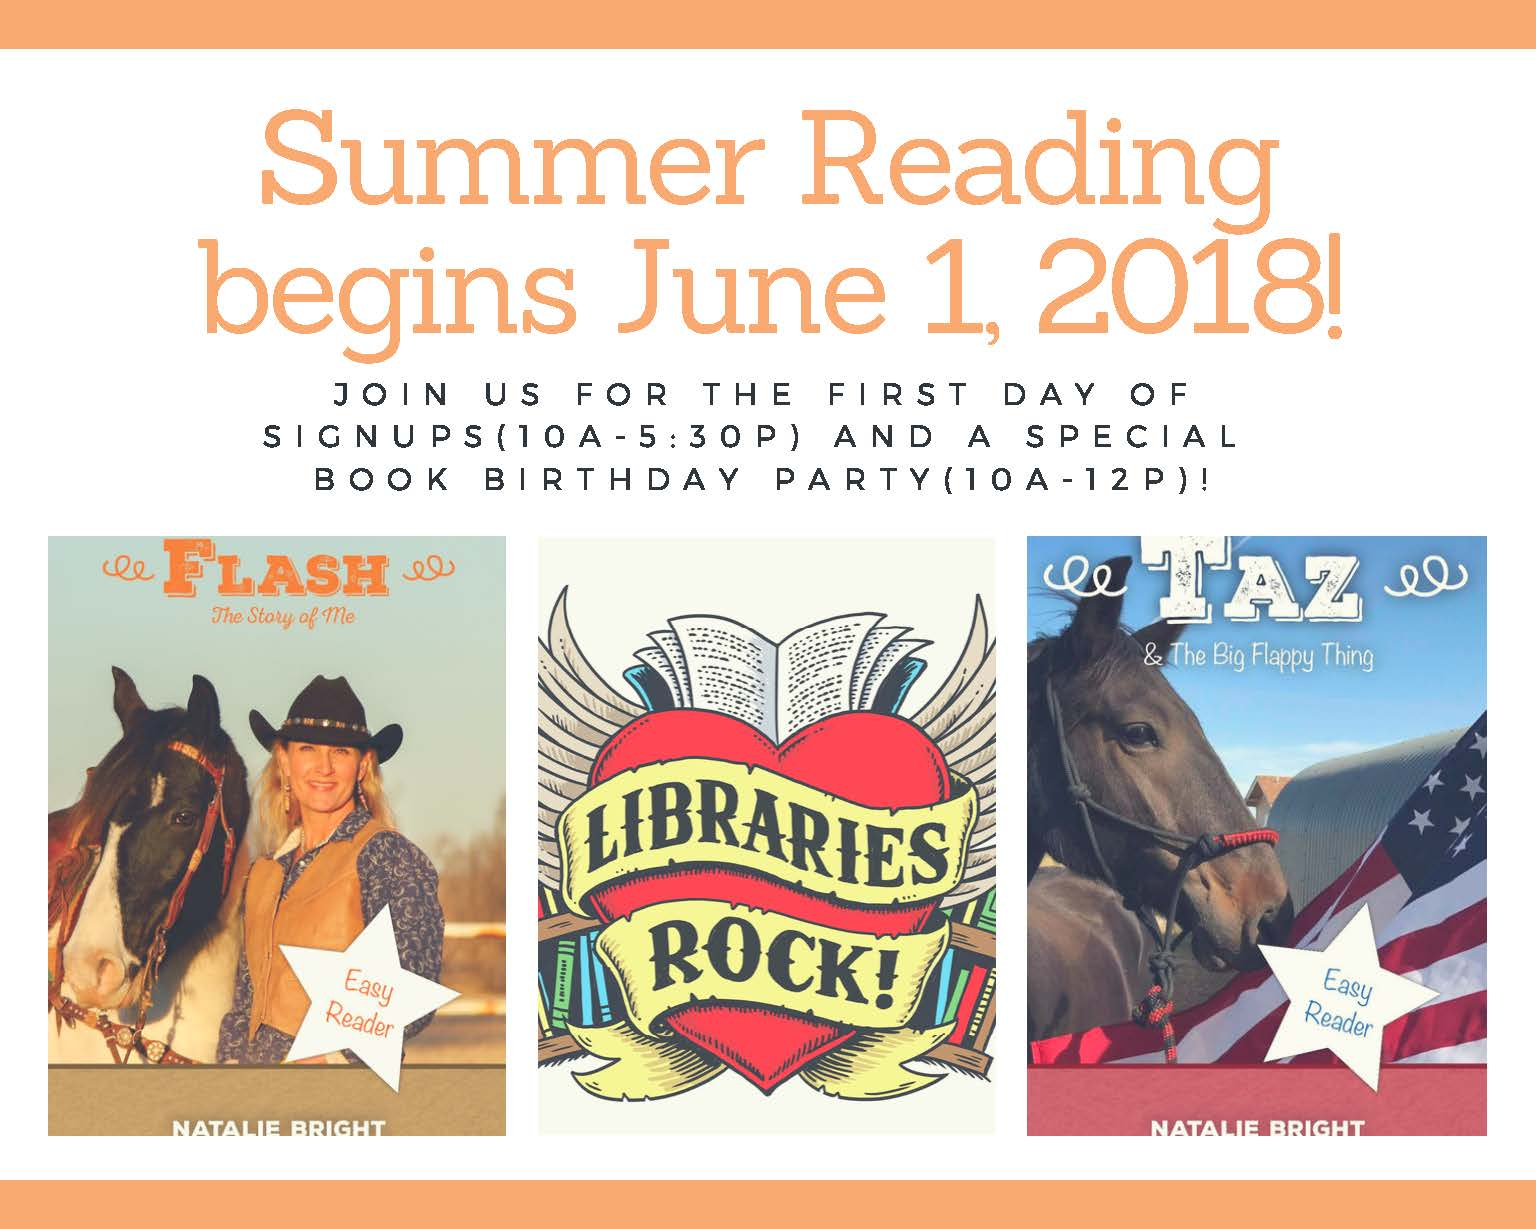 Summer Readingbegins June 1, 2018!.jpg